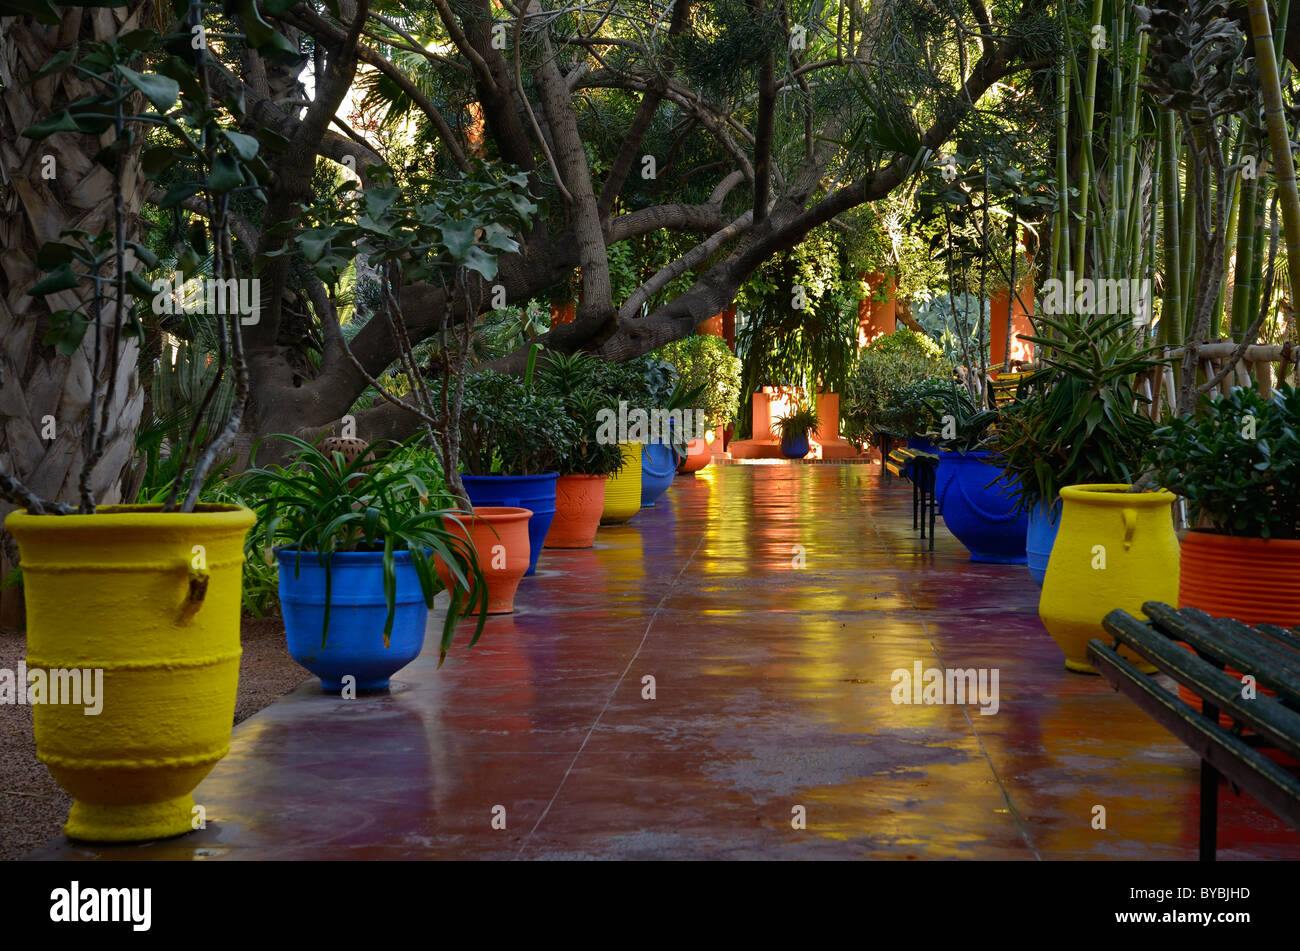 Colorful Yellow Blue And Orange Planters On A Walkway In